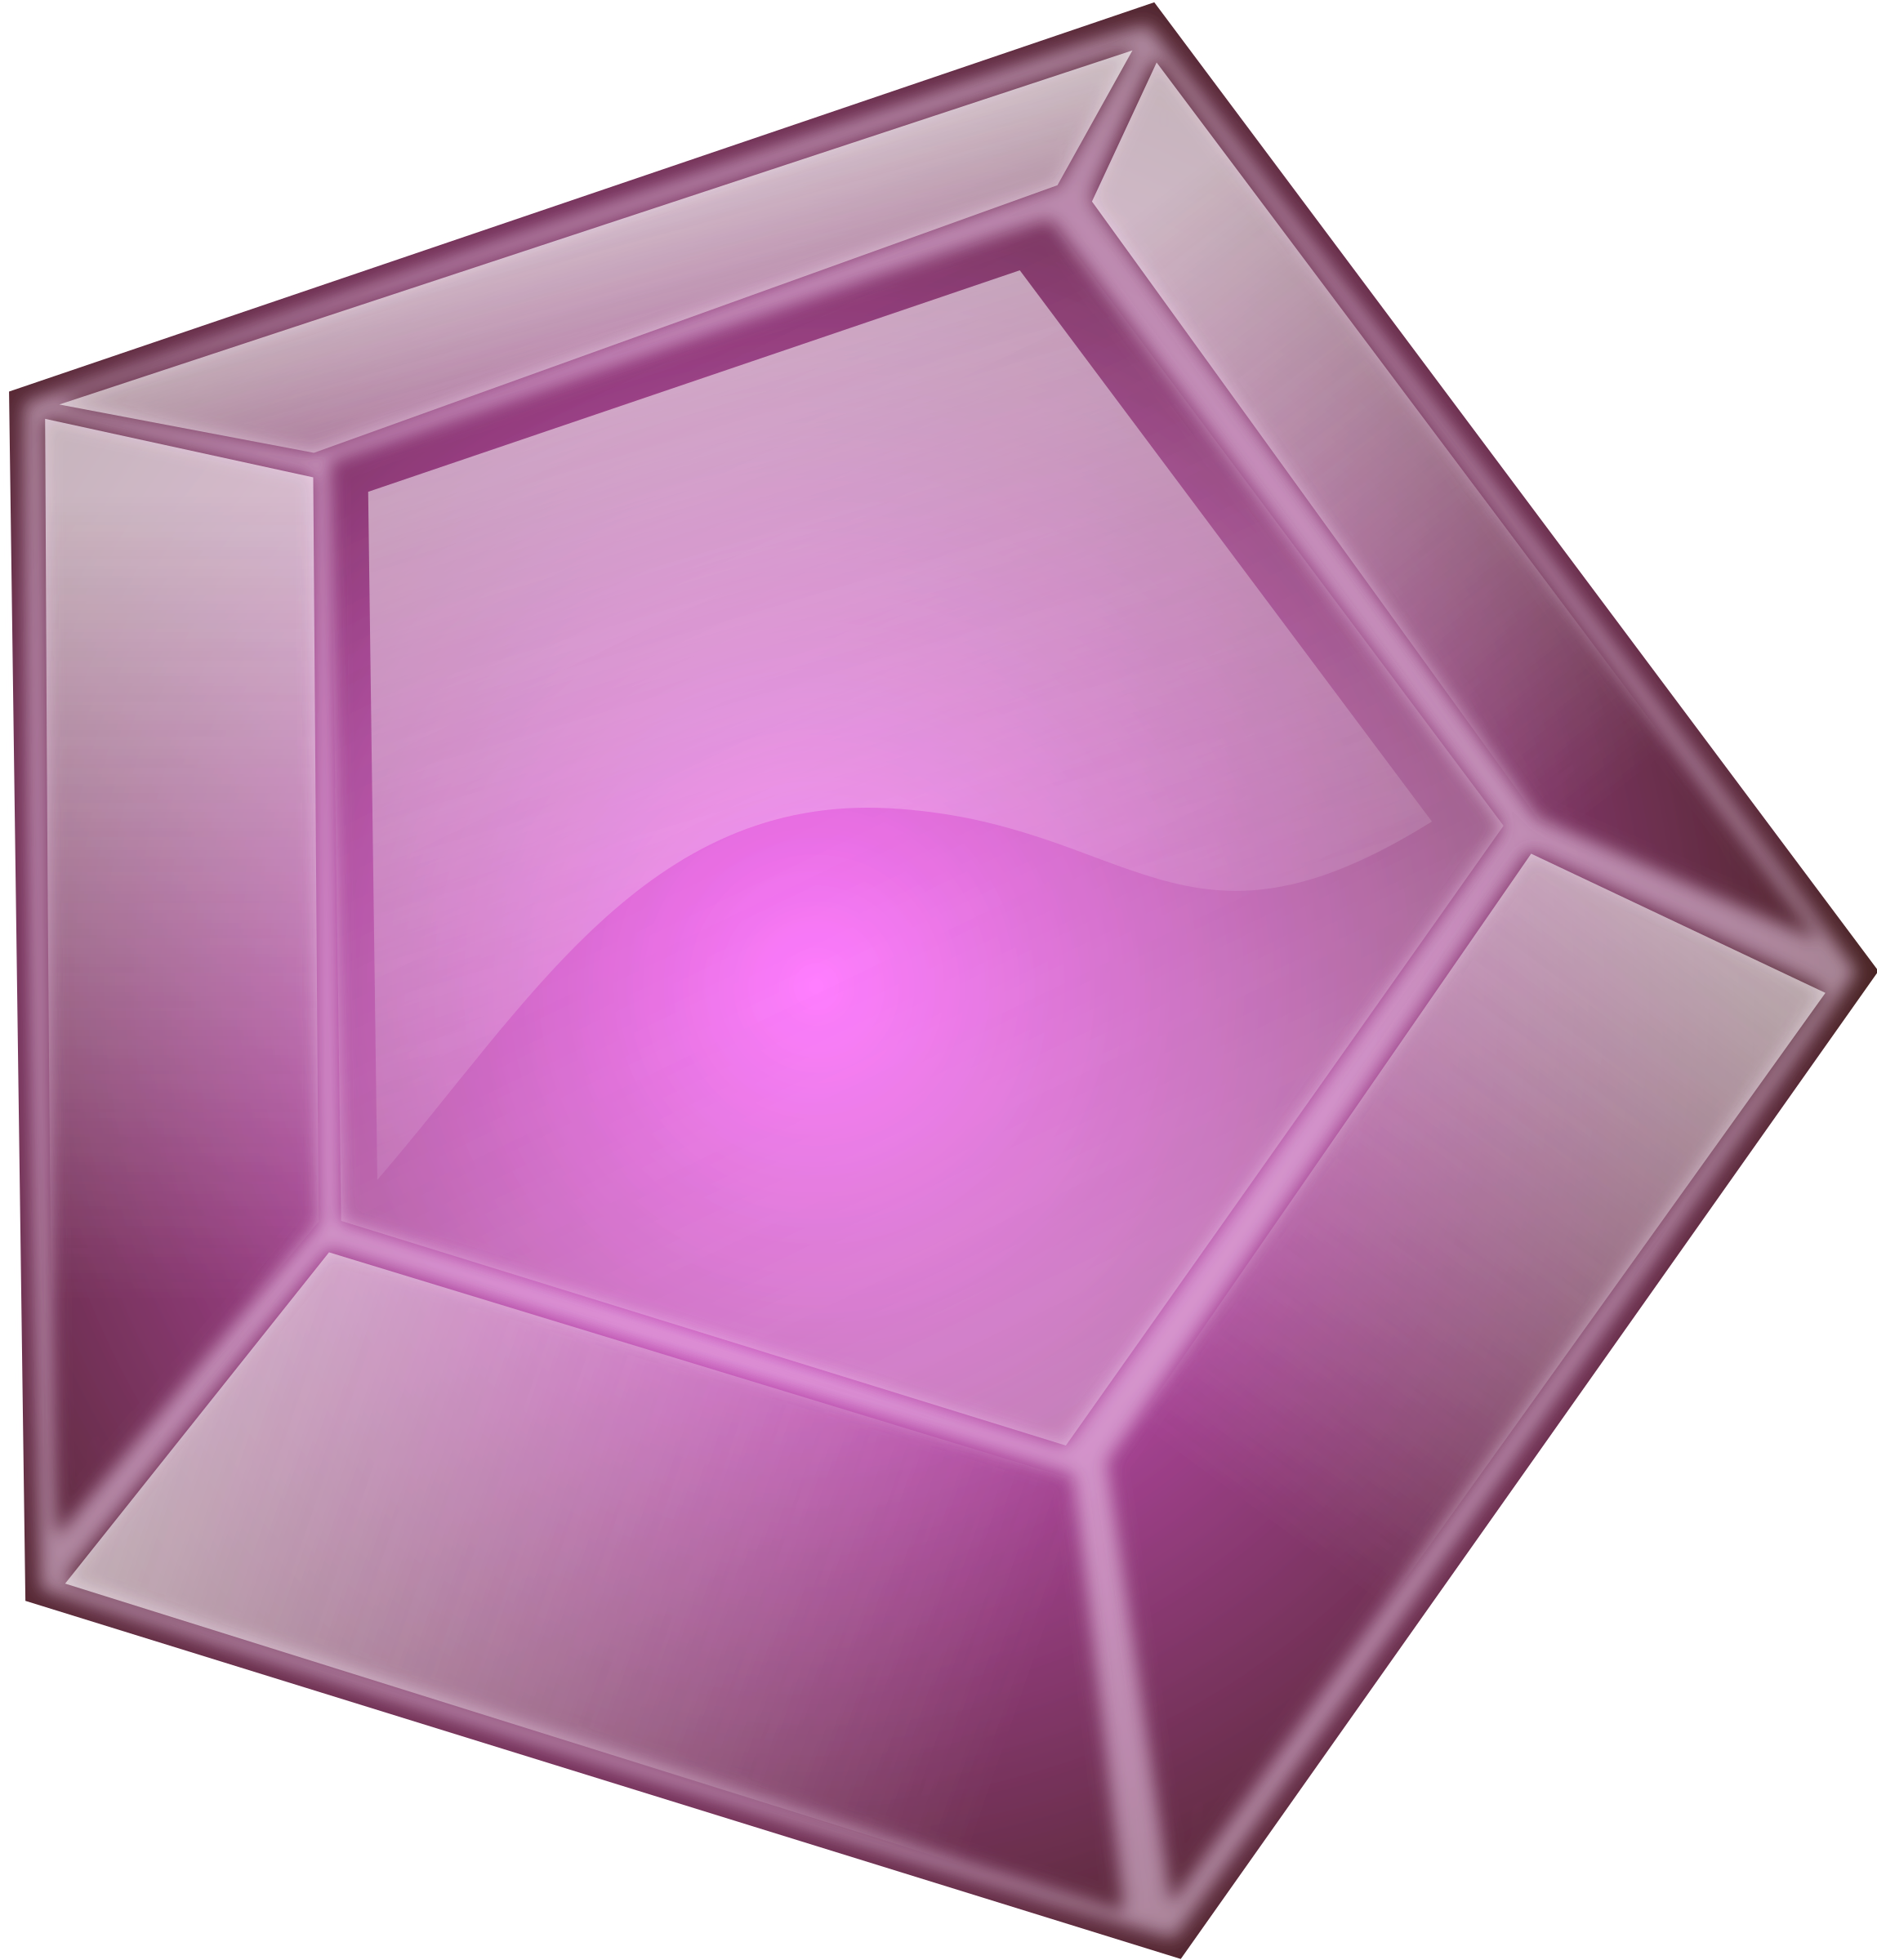 Gems clipart purple diamond Illustrations RoyaltyFree Purple Purple diamond